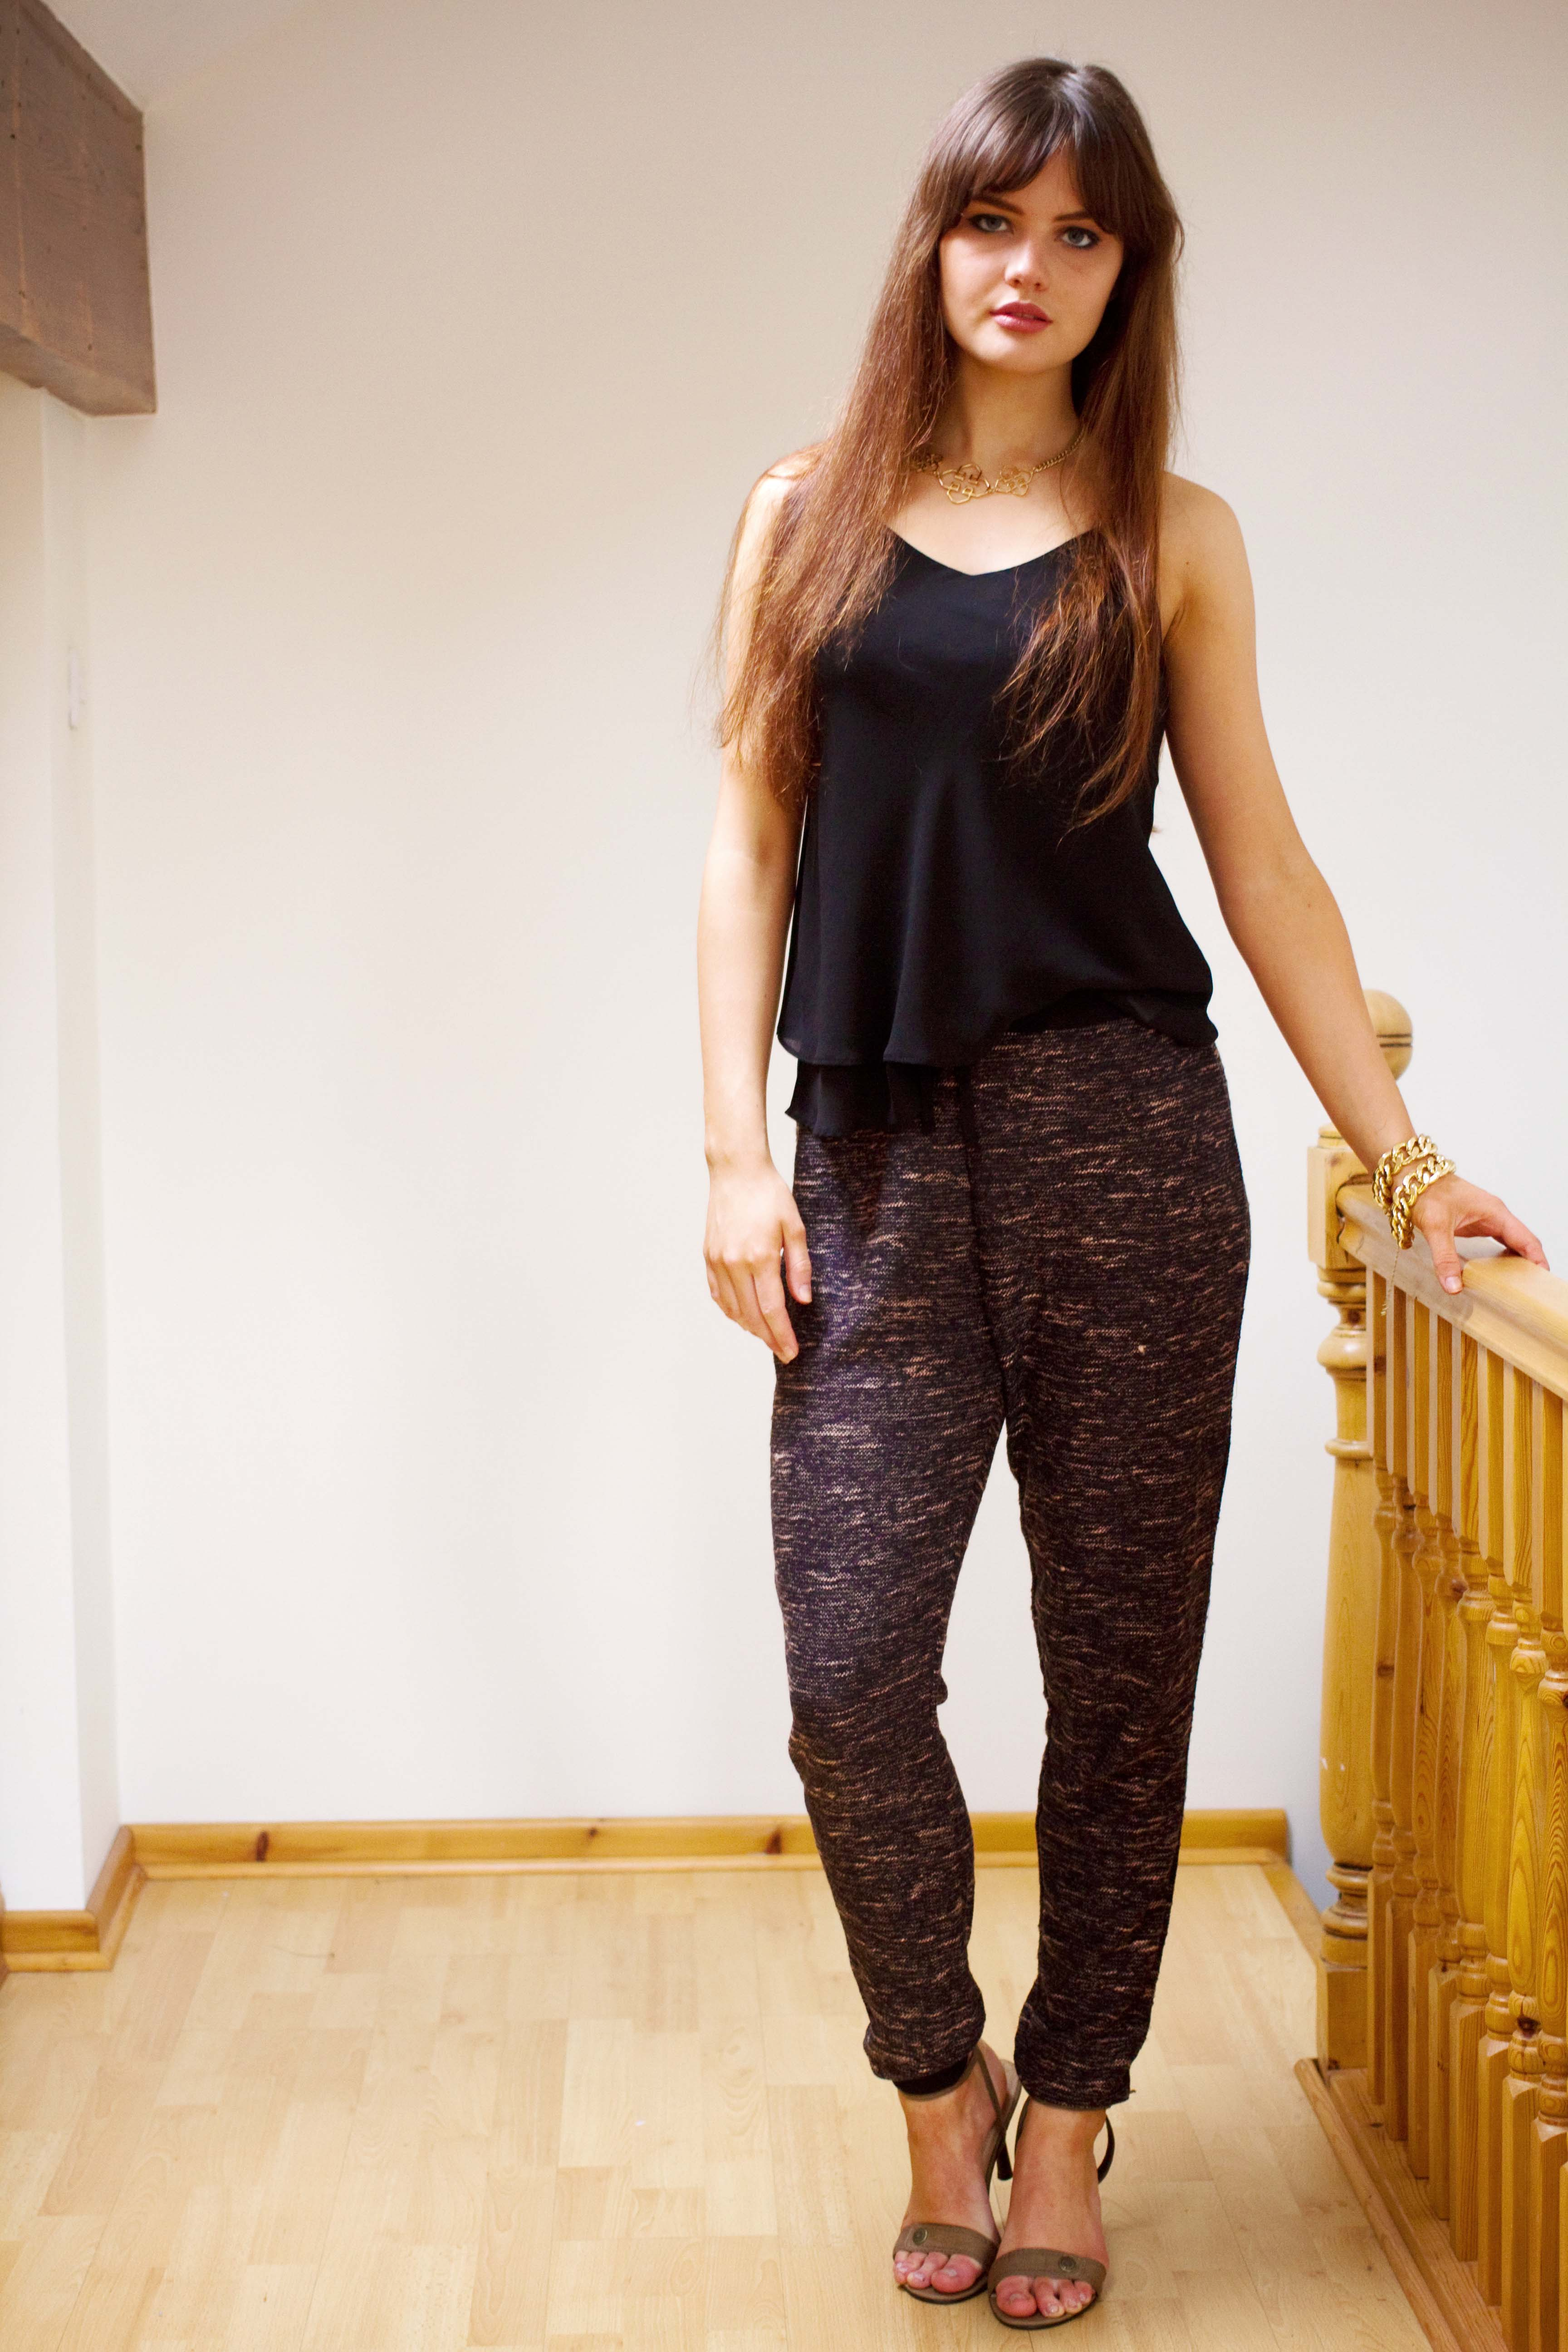 Brunette teen wearing black camisole and textured joggers